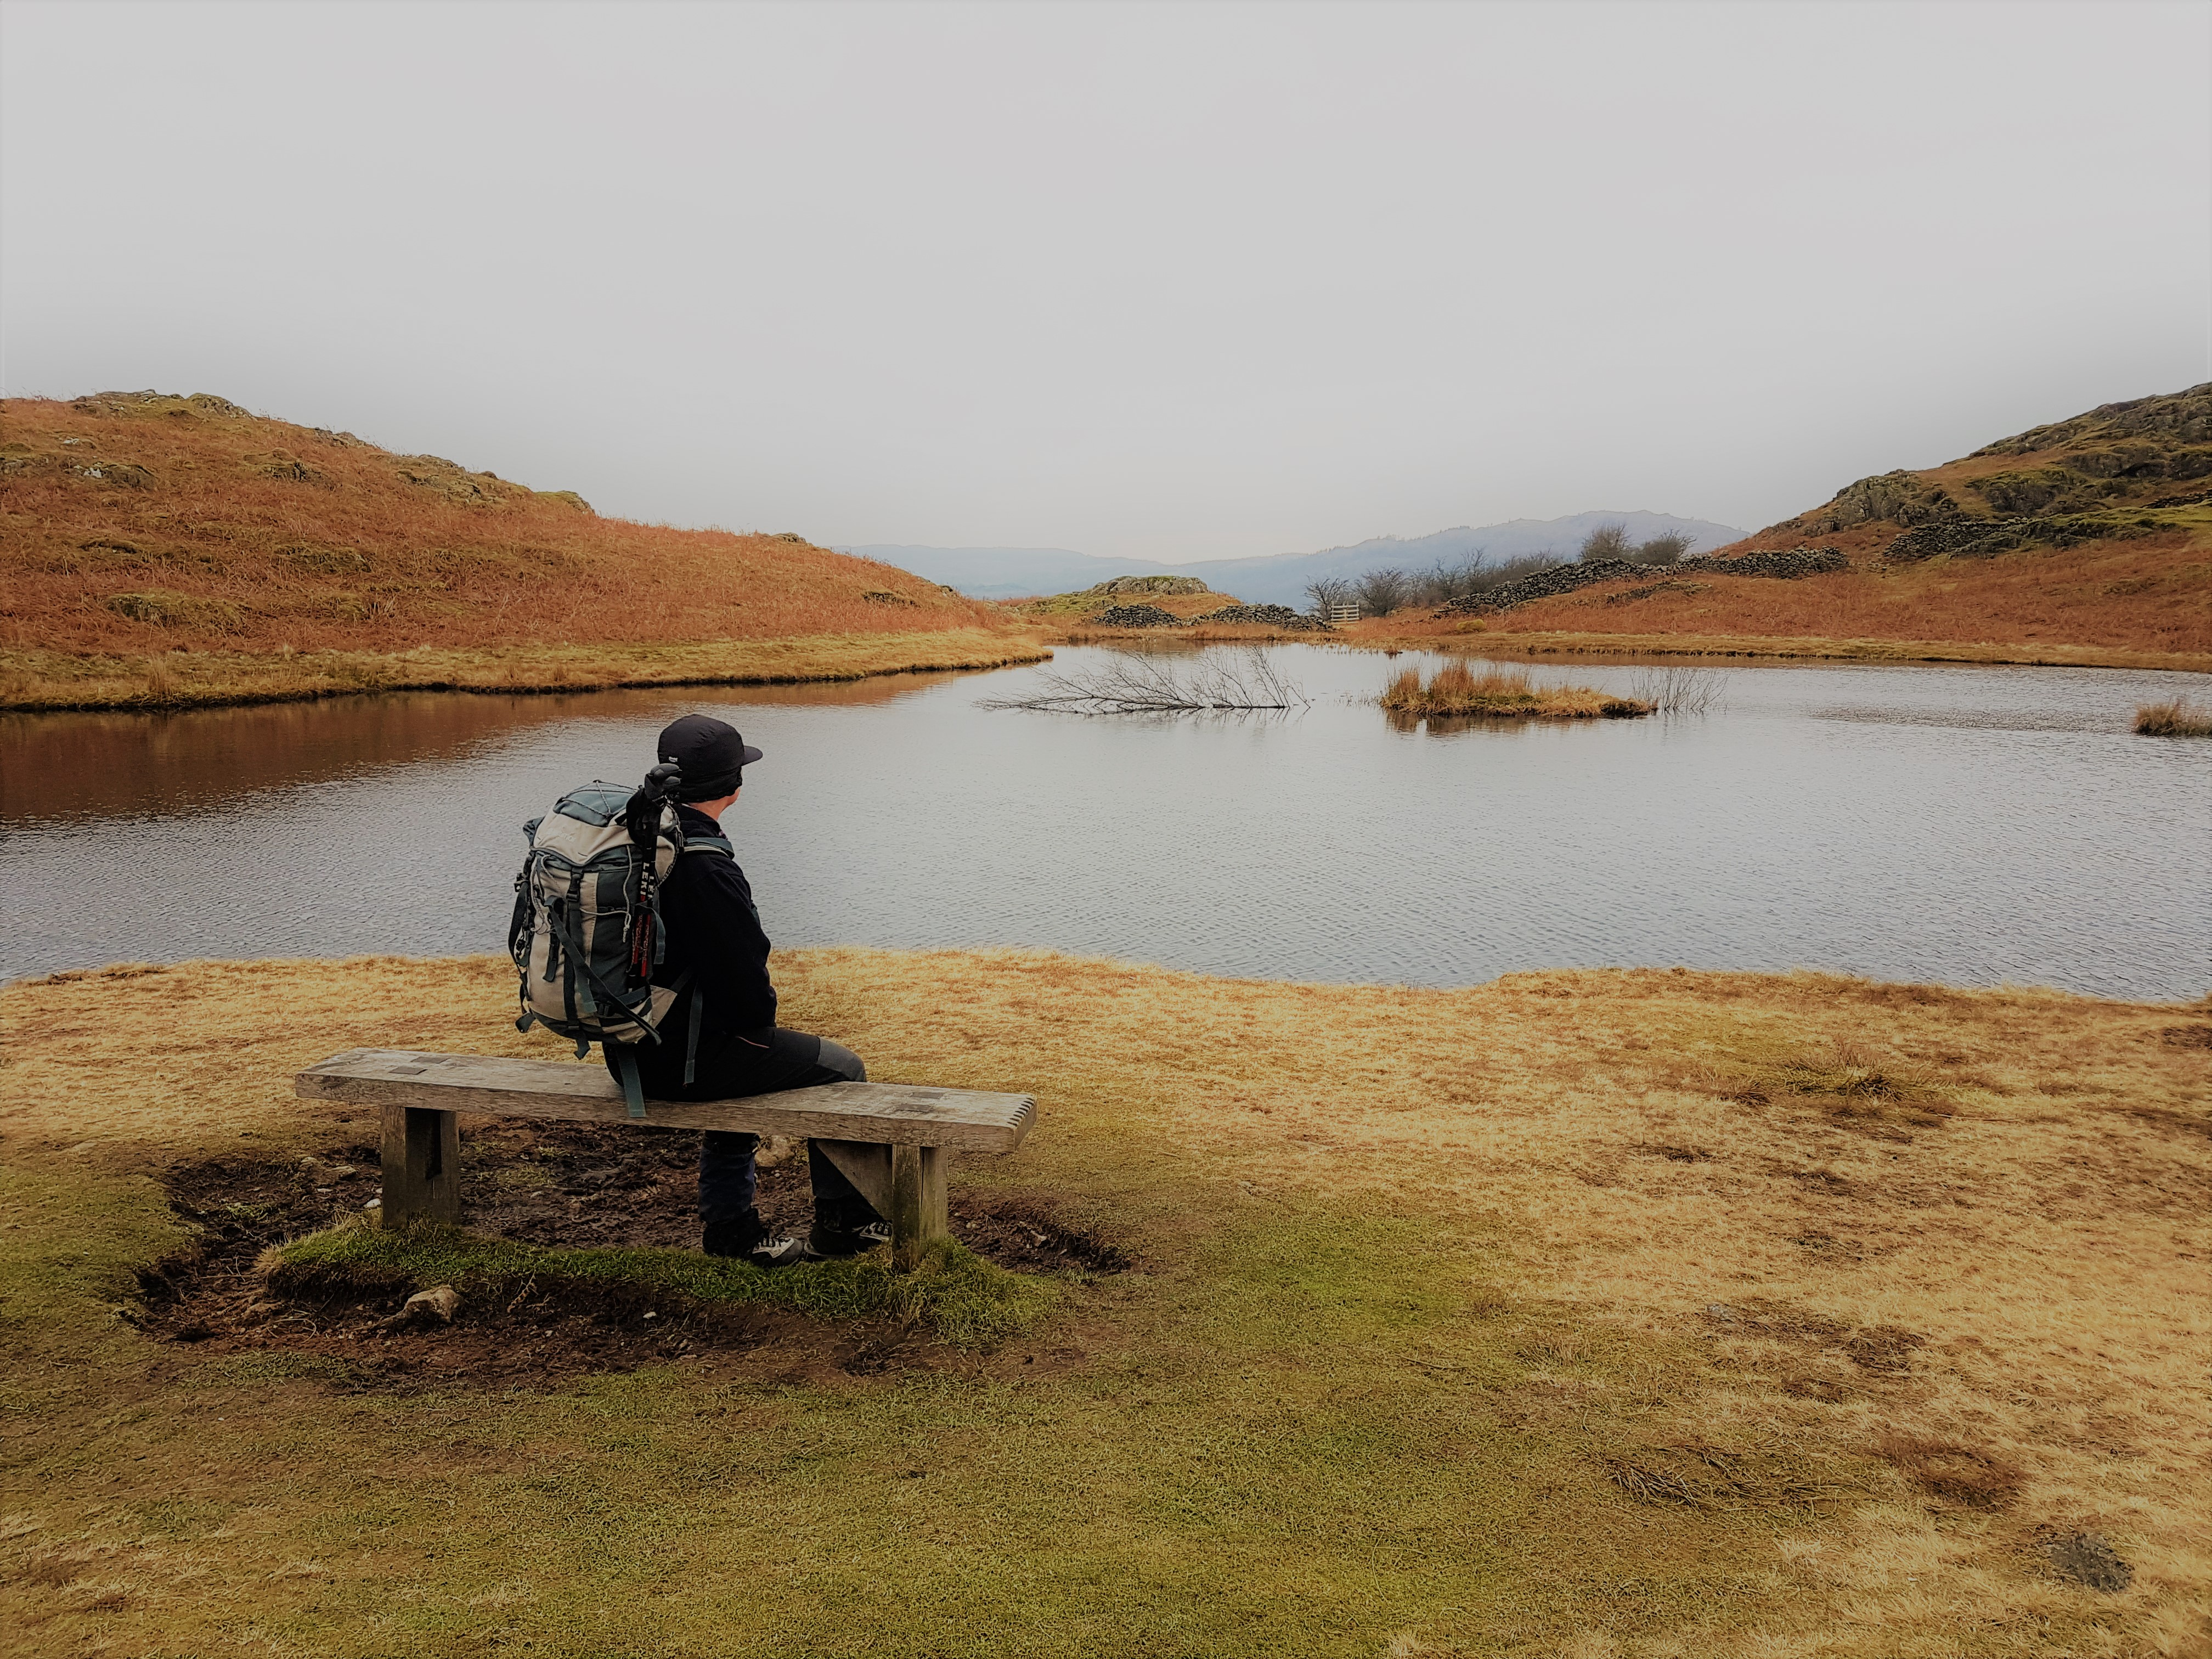 Lily-Tarn-enroute-to-Ambleside